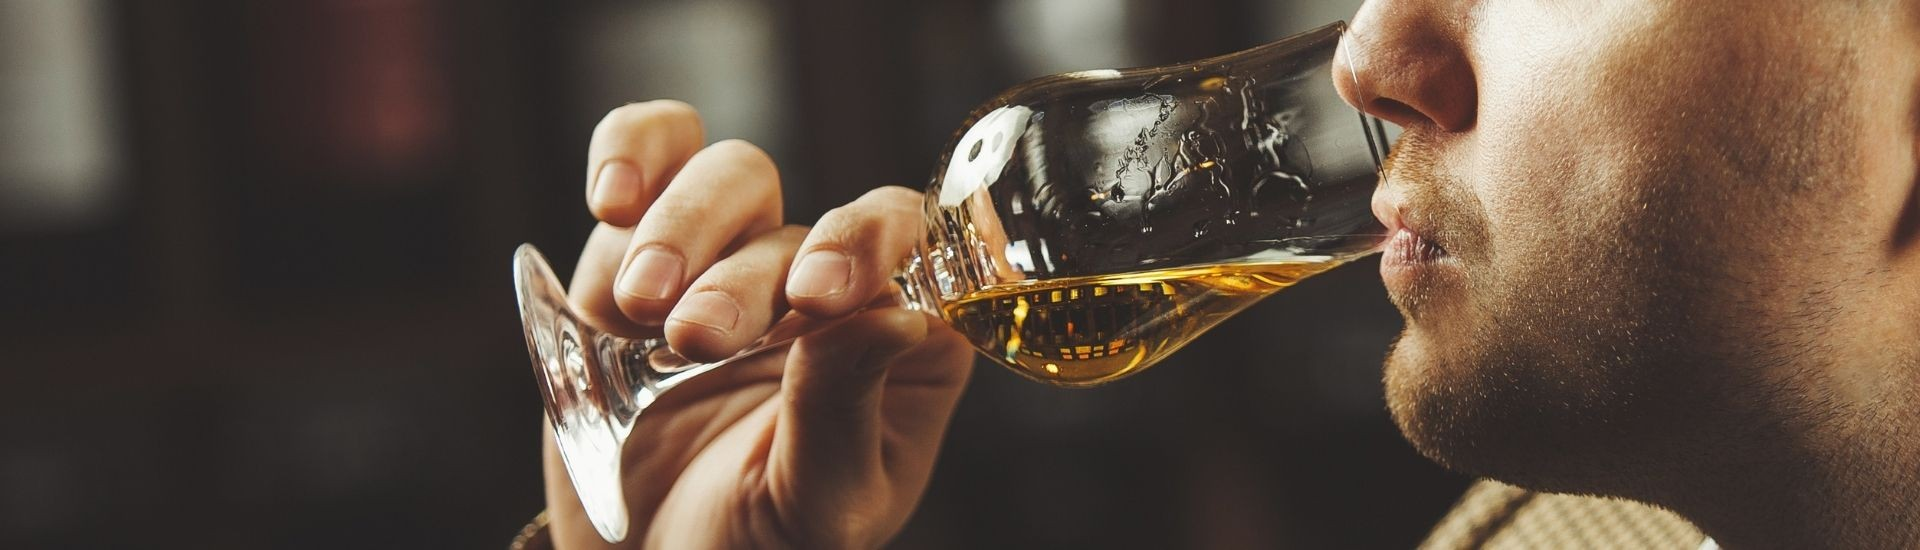 Man tasting whiskey from glass